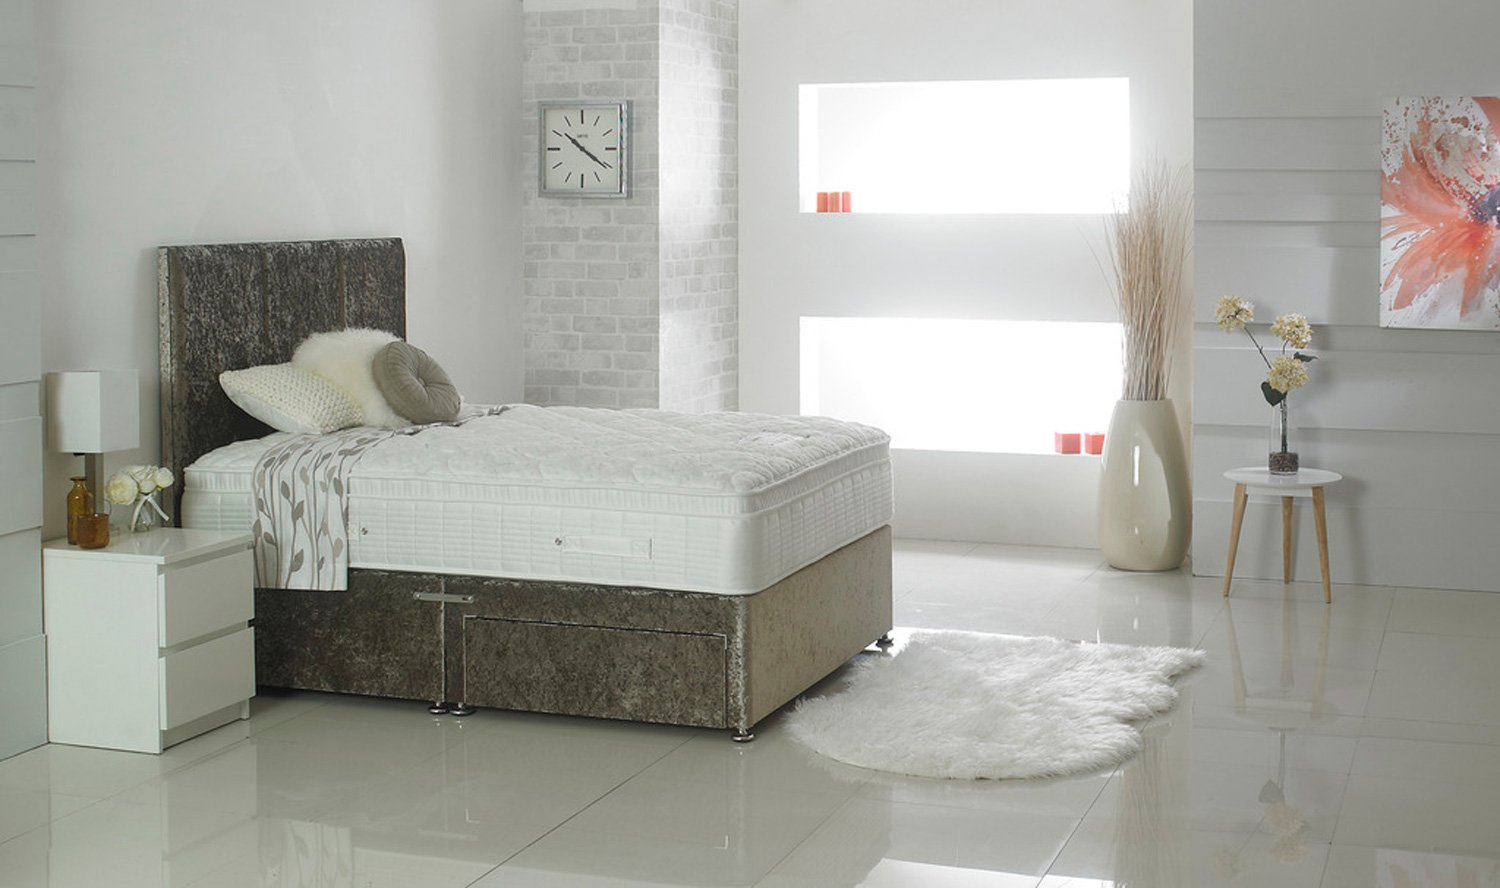 Dura Beds Celebration 1800 Deluxe